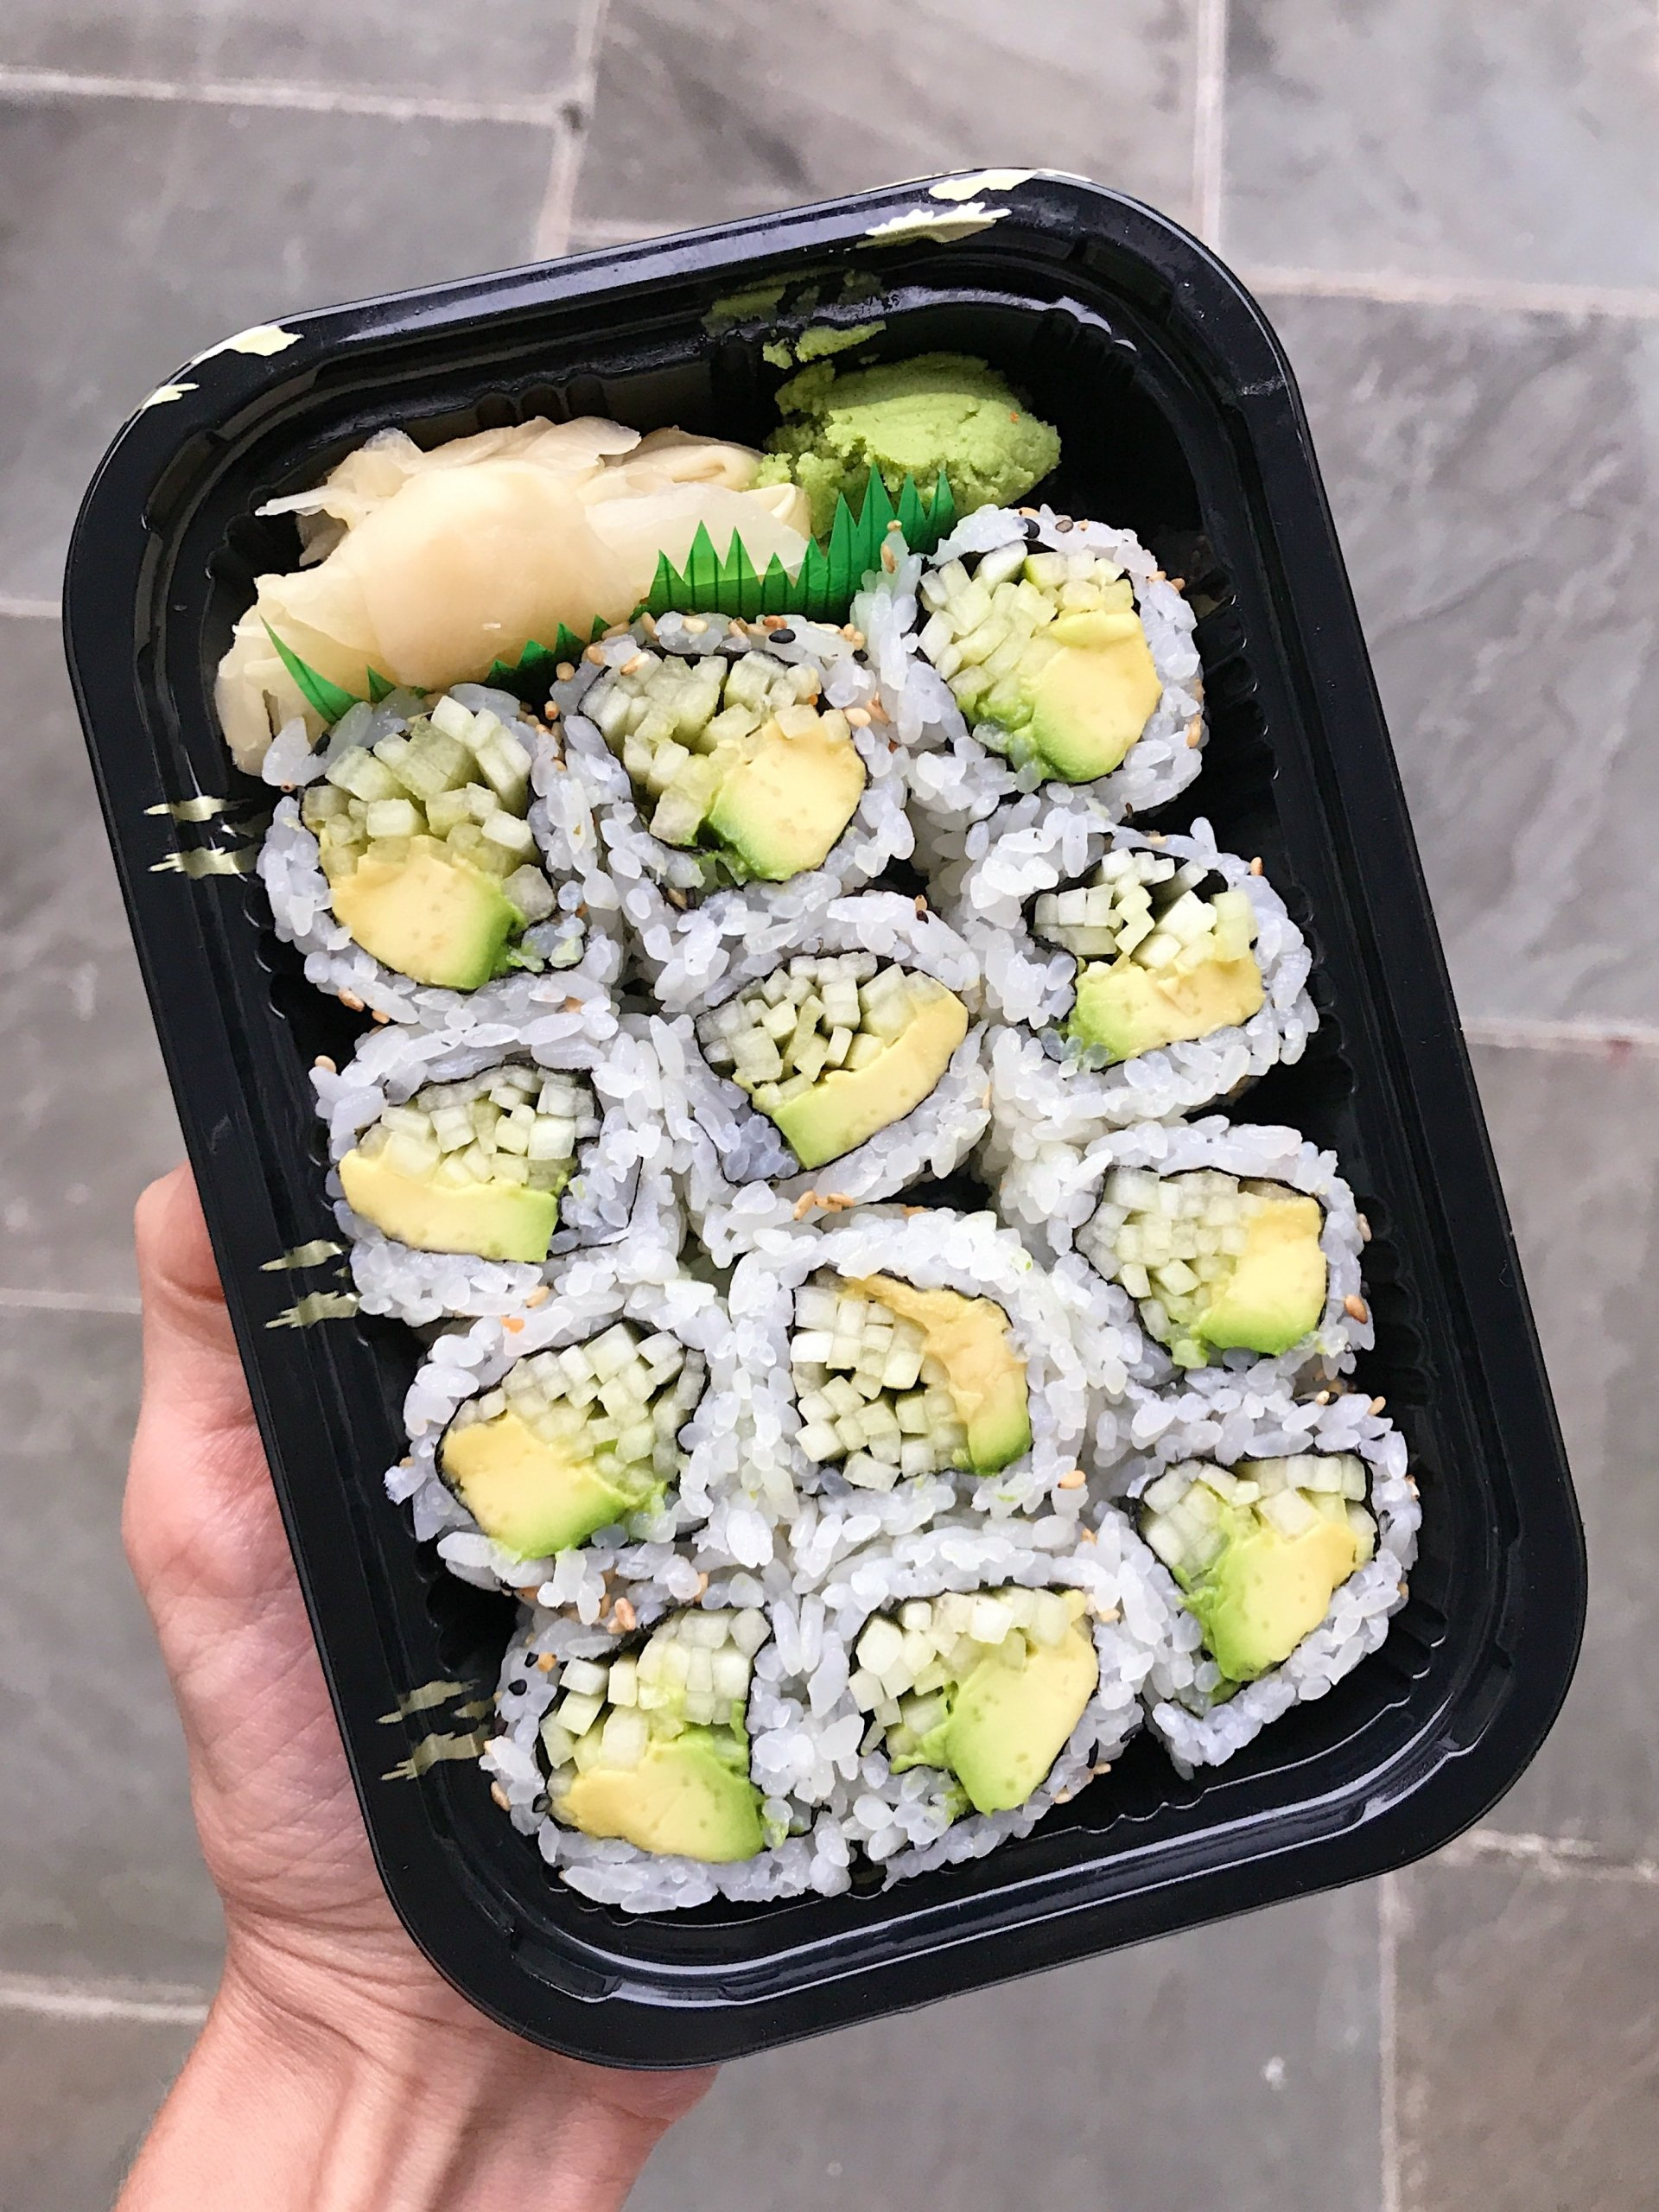 is your sushi gluten-free? www.healthgffamily.com